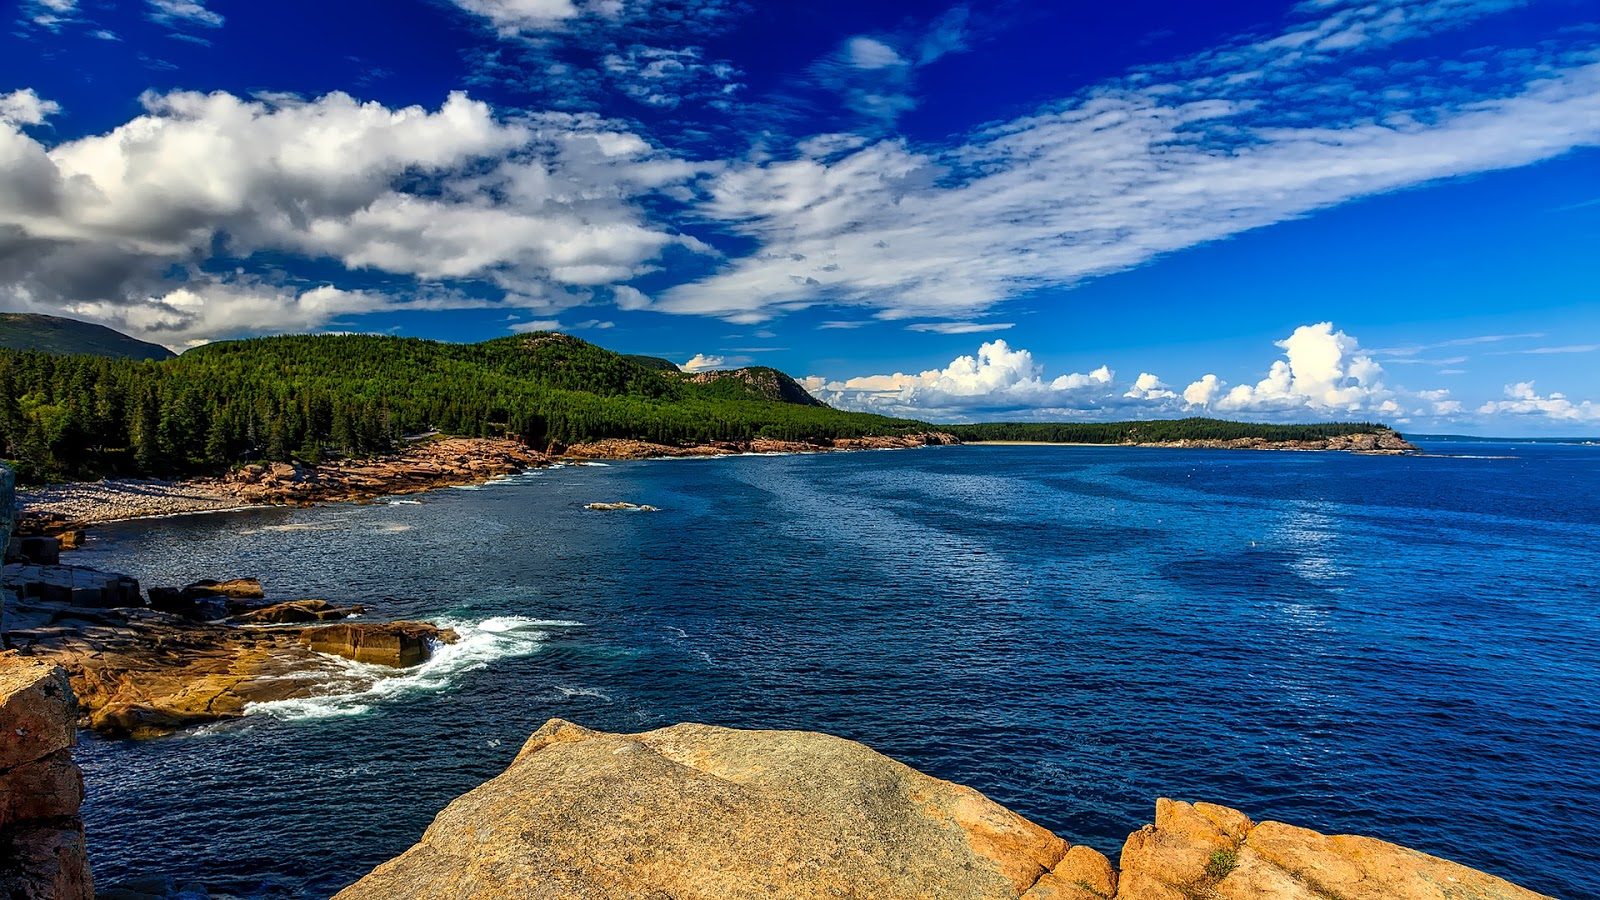 Scenery, Food, and Northern Culture: 5 Reasons You Should Make Maine Your Next Stop for Fun